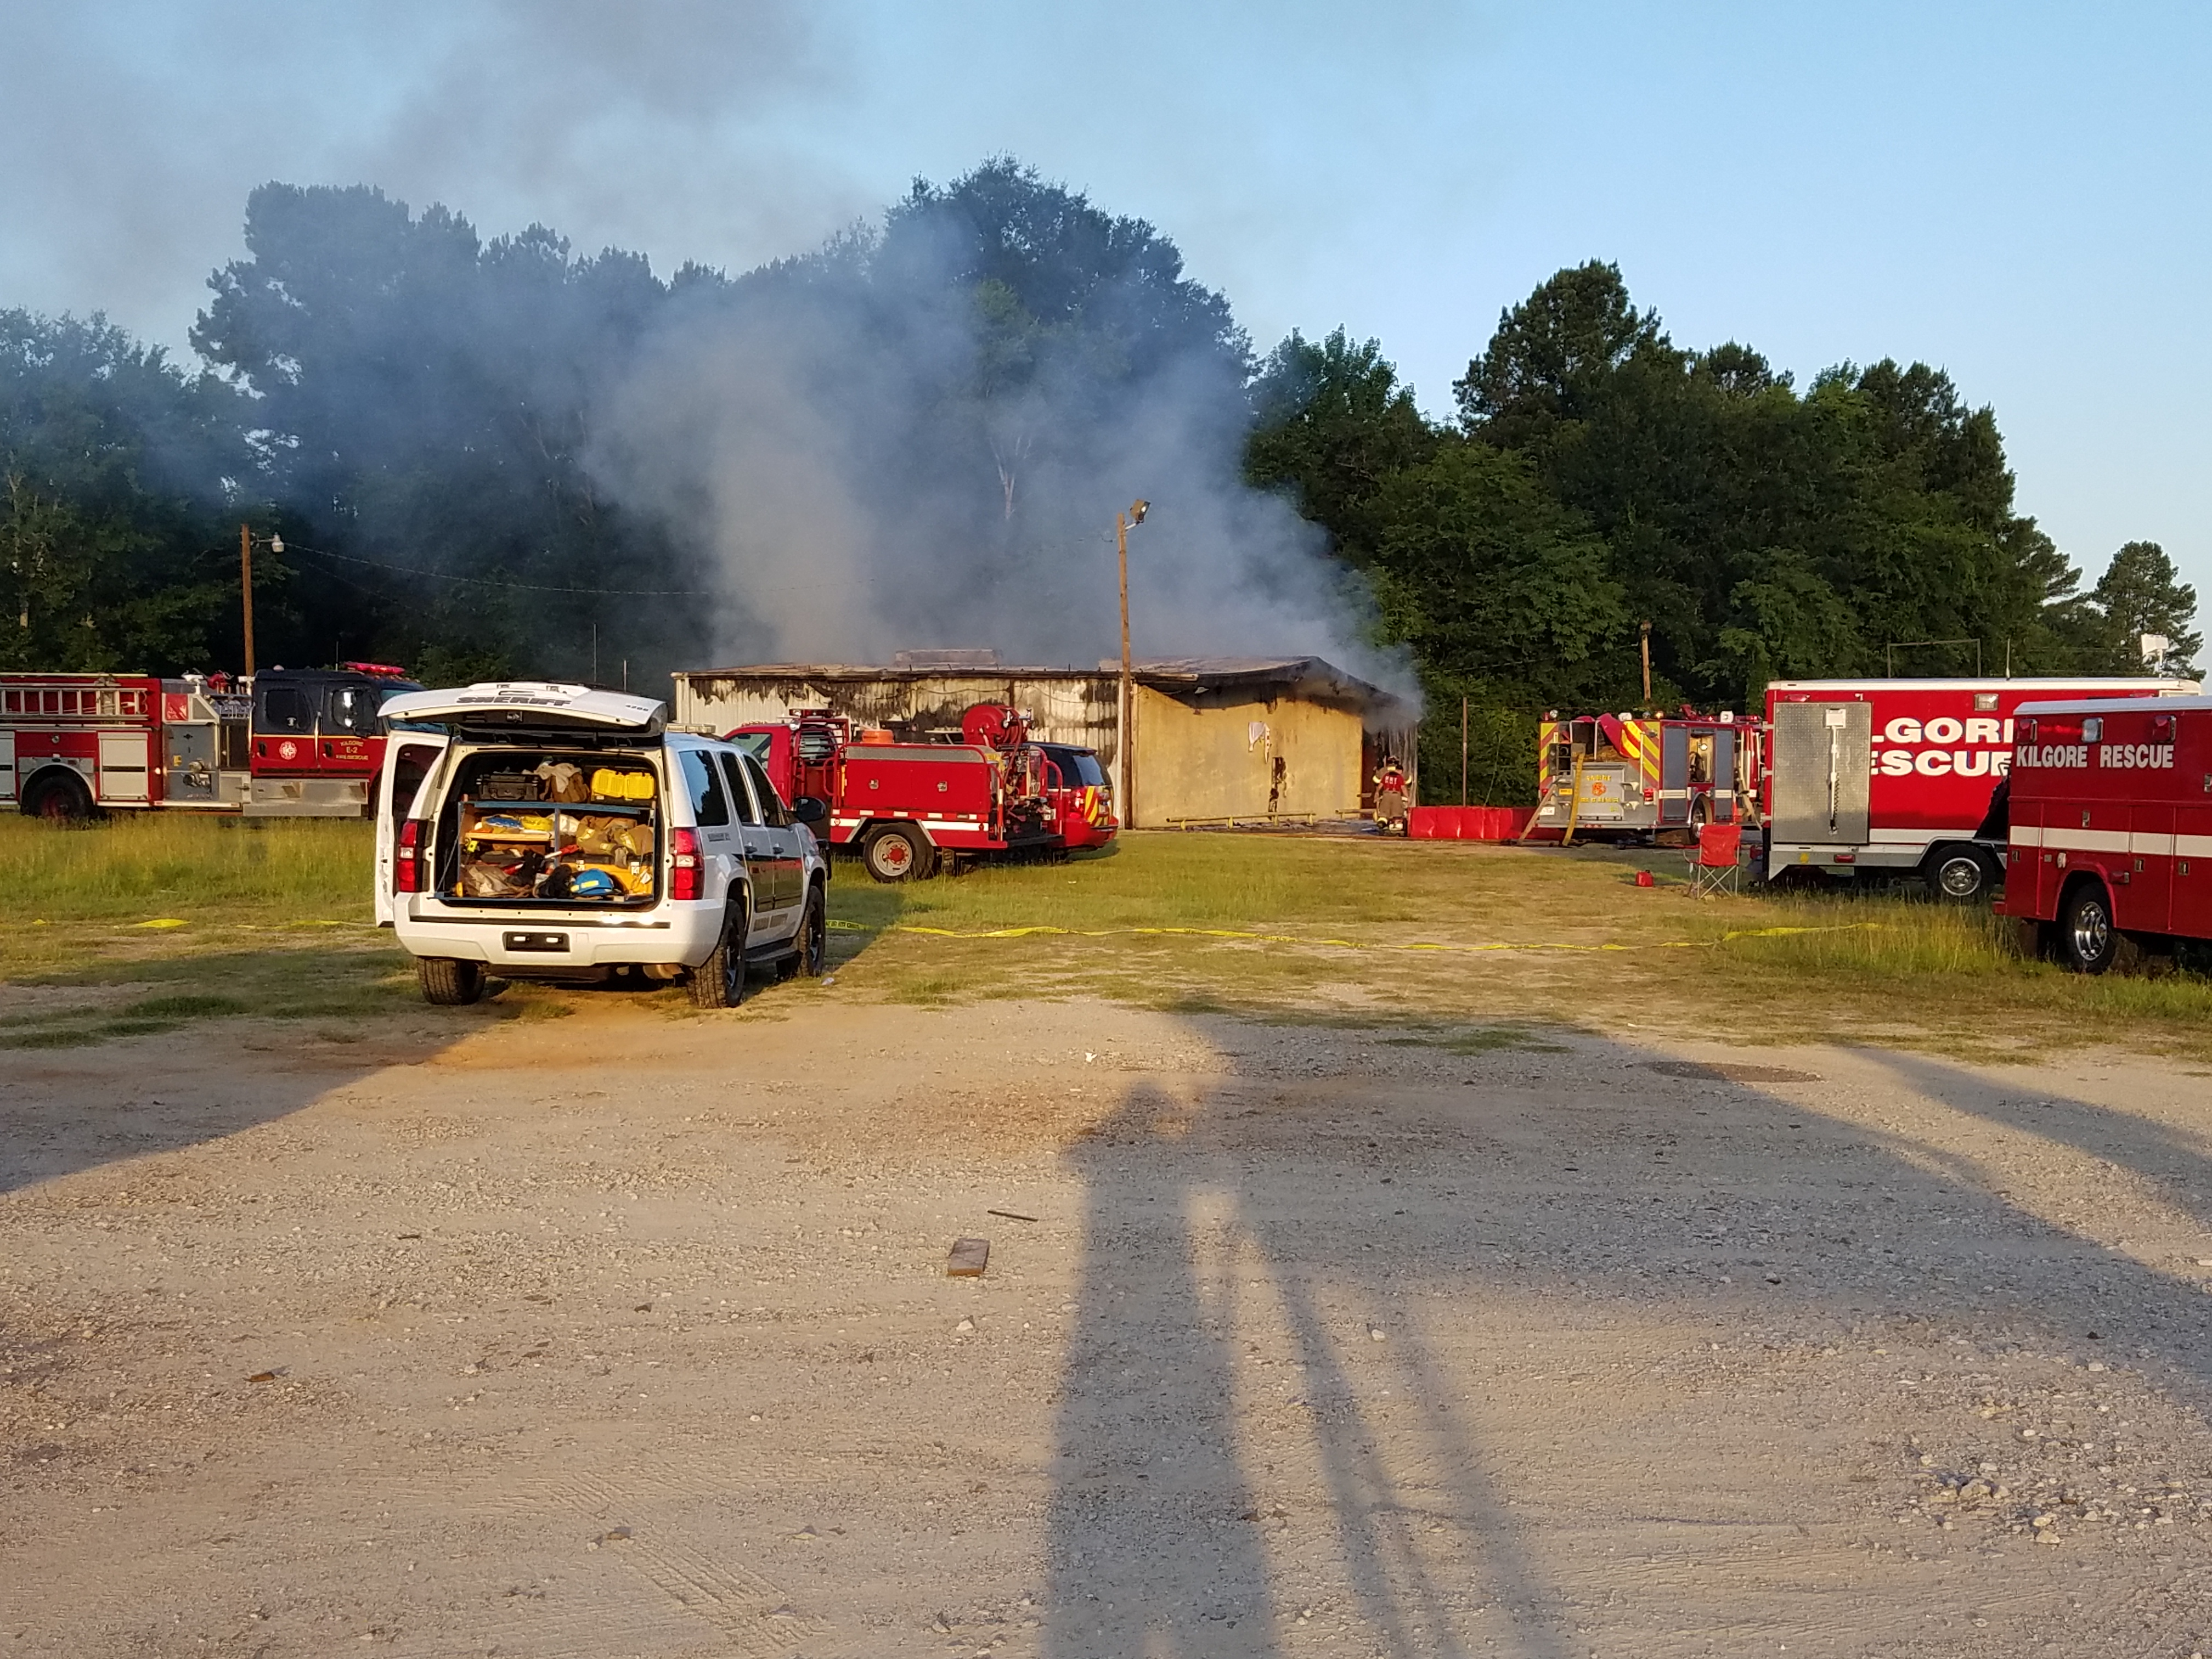 KILGORE GENTLEMAN'S CLUB FIRE_1467029054466_9217134_ver1.0